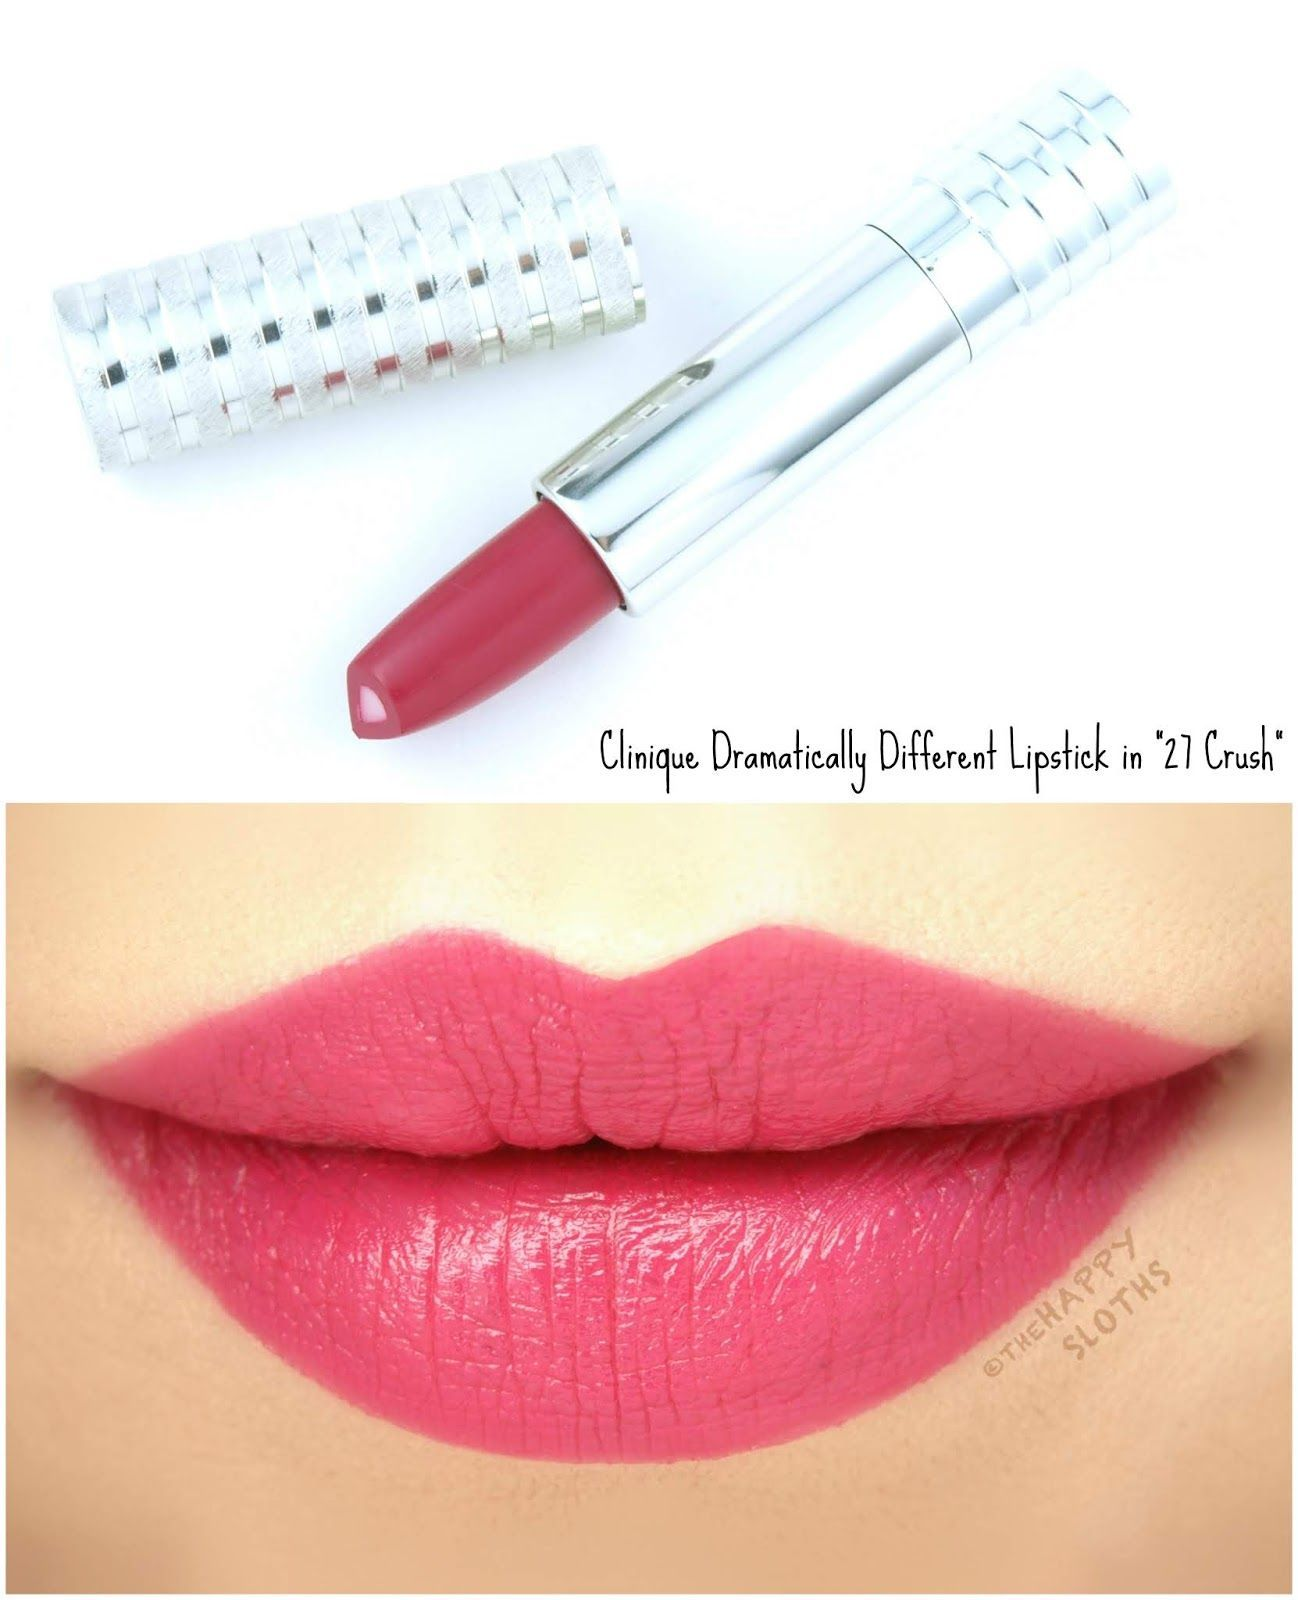 Clinique Dramatically Different Lipstick Shaping Lip Color In 27 Crush Review And Swatches Beautymakeup Lip Colors Clinique Lipstick Lipstick Kit